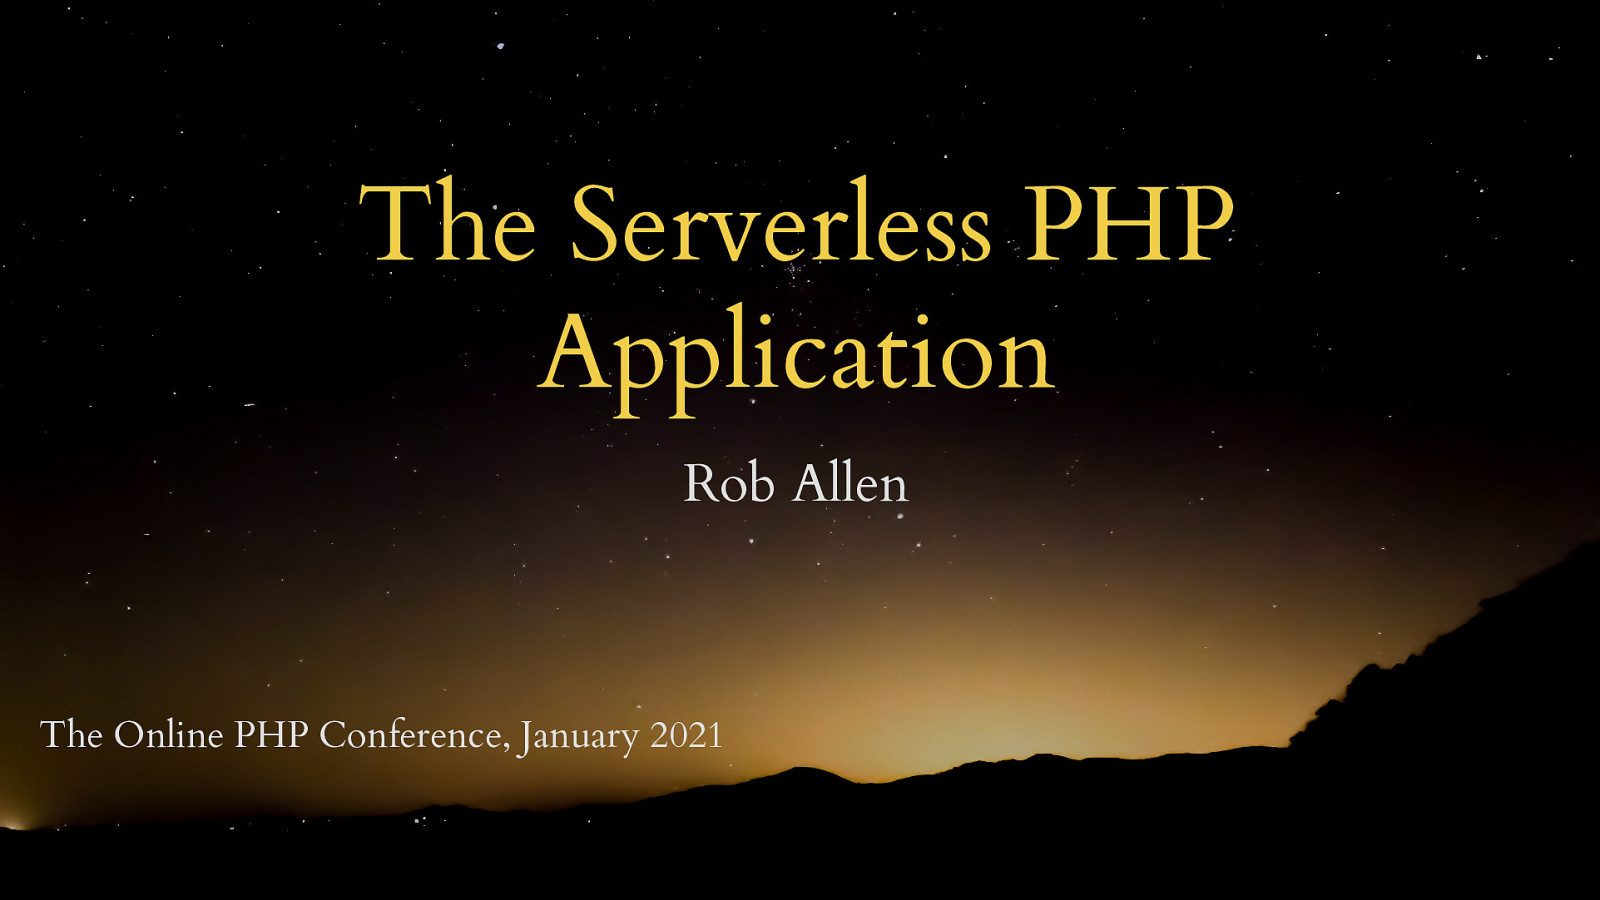 The Serverless PHP Application